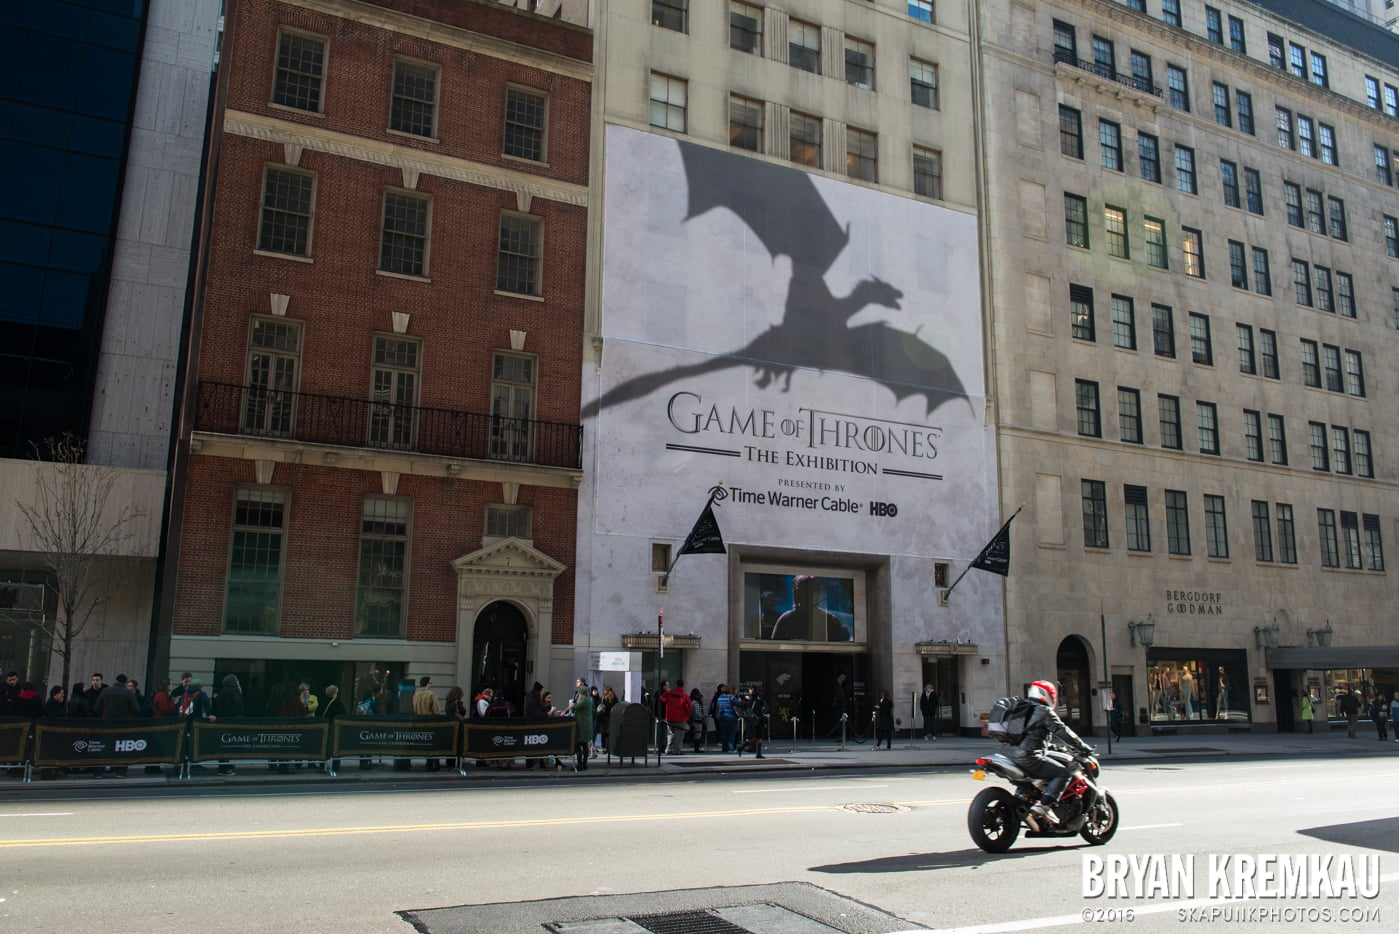 Game Of Thrones Exhibition @ New York, NY - 3.29.13 (57)